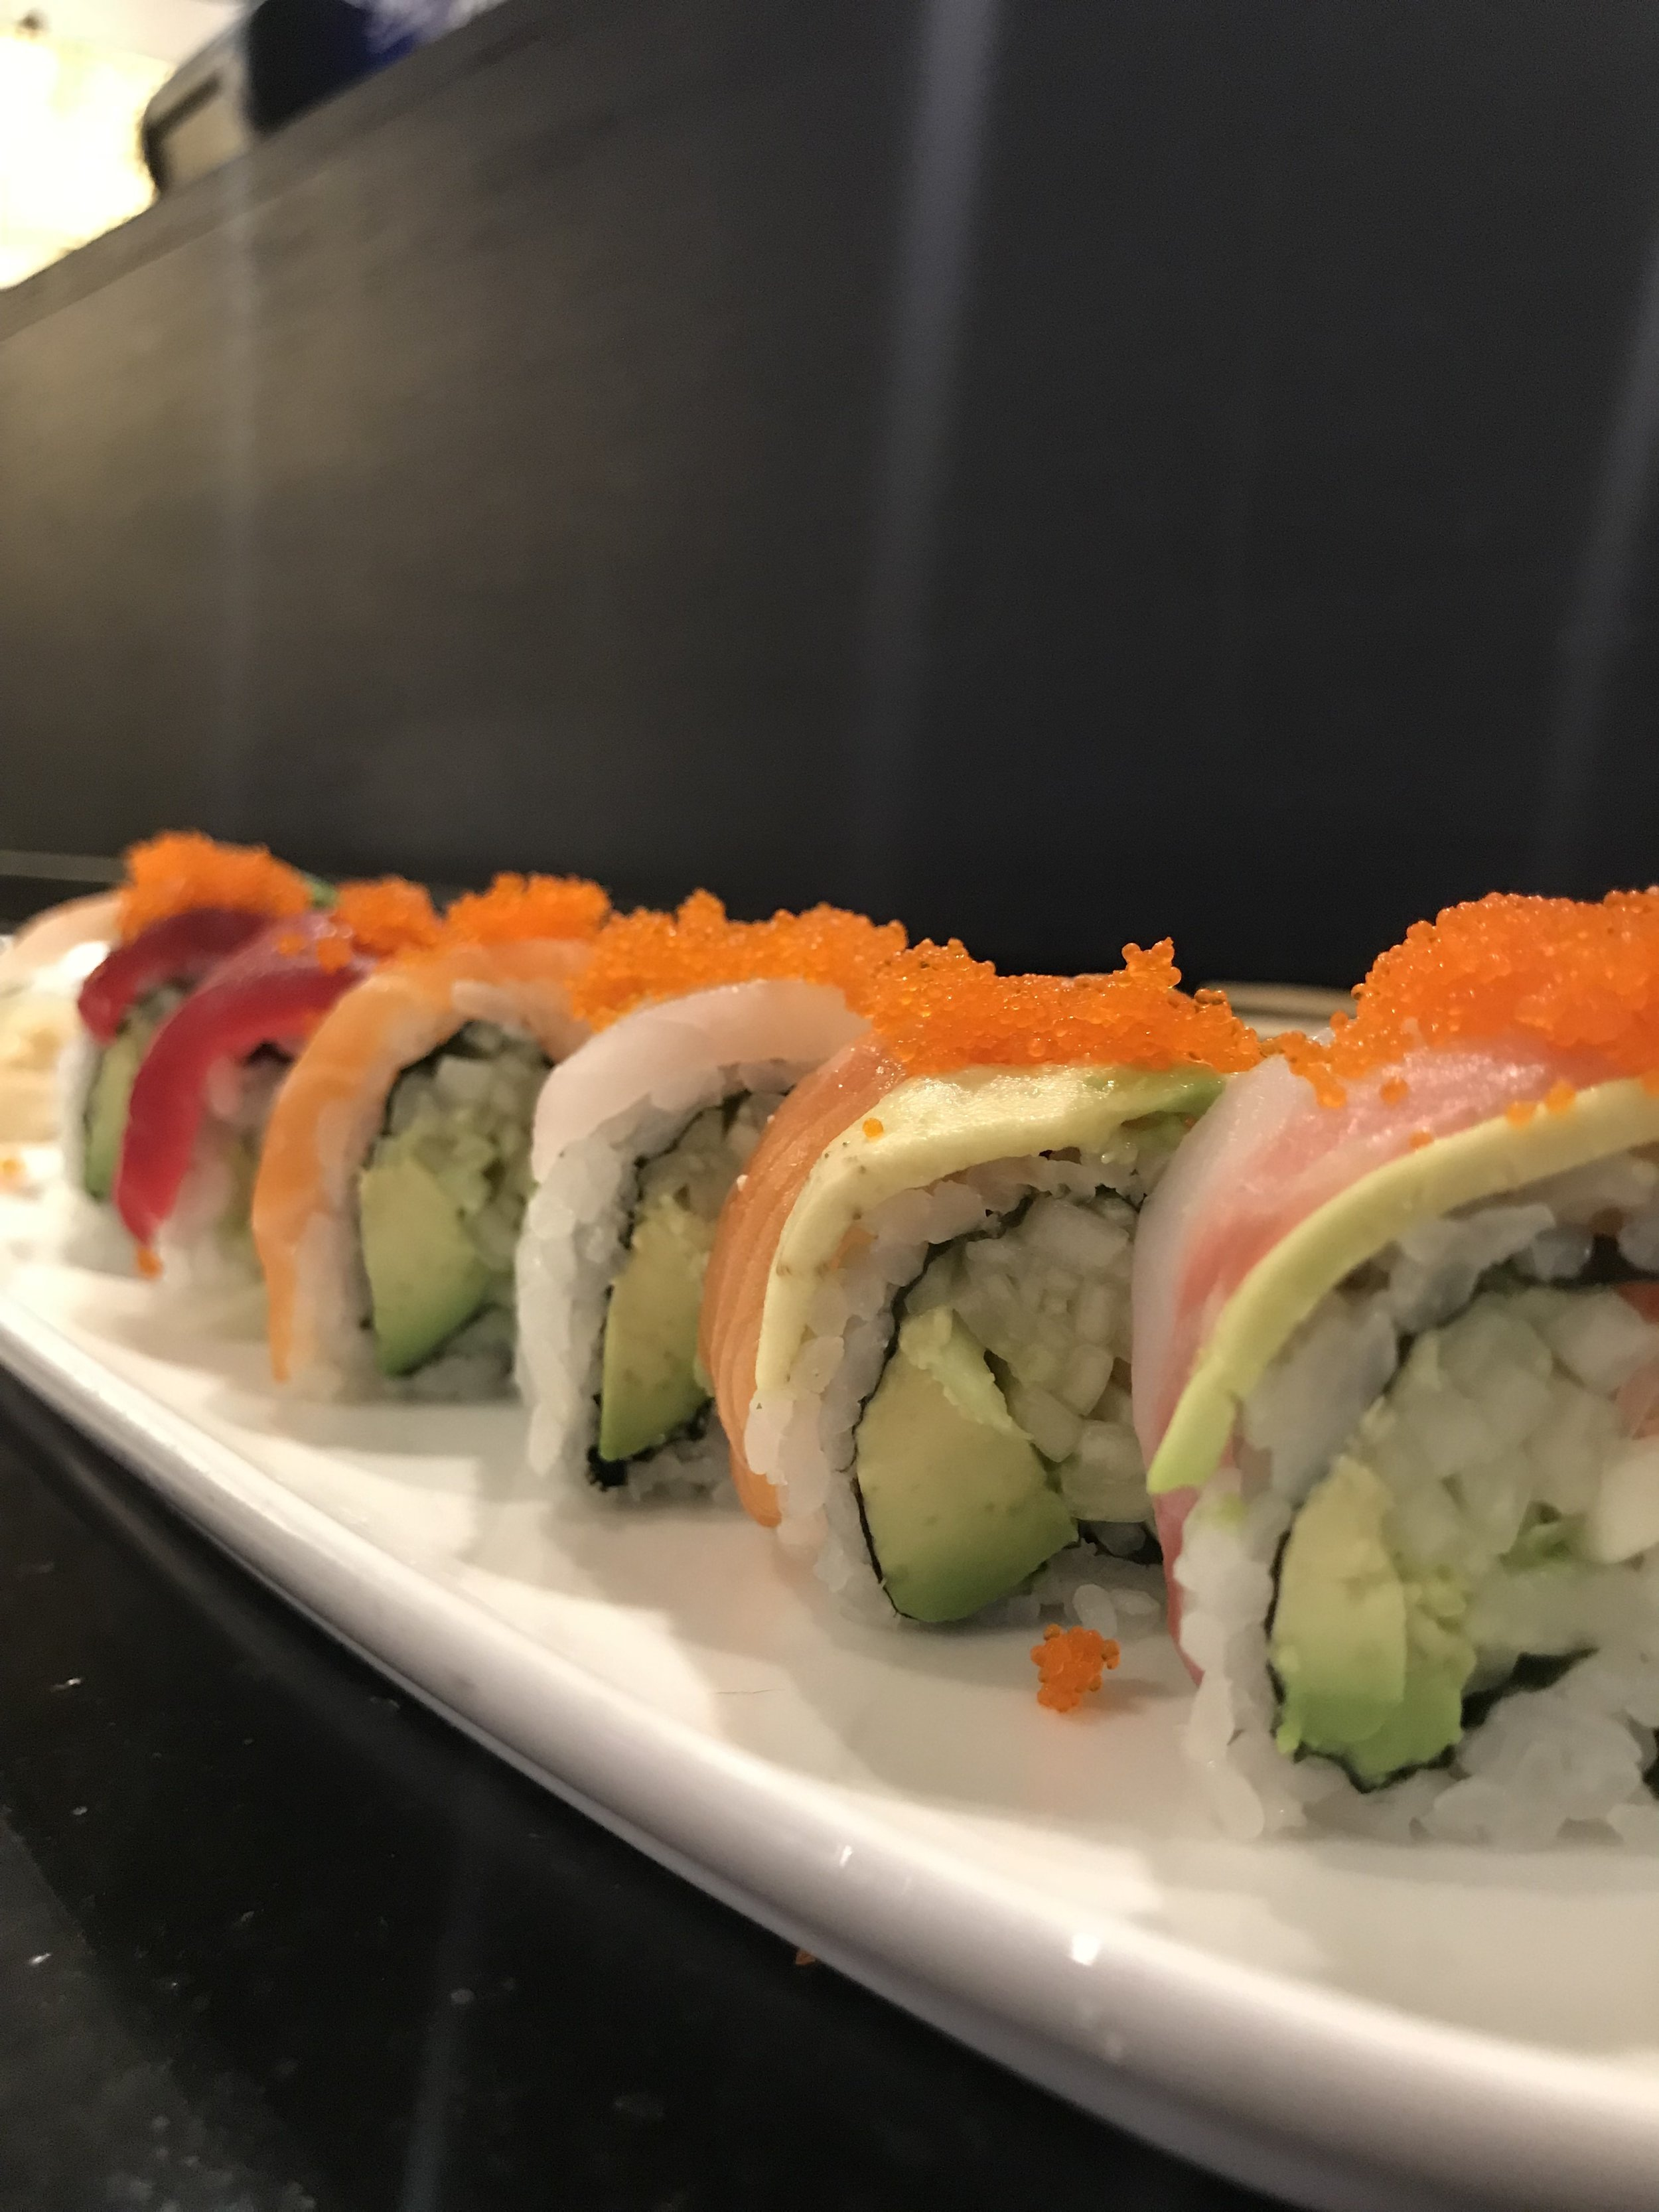 The rainbow roll is one of my favorites.